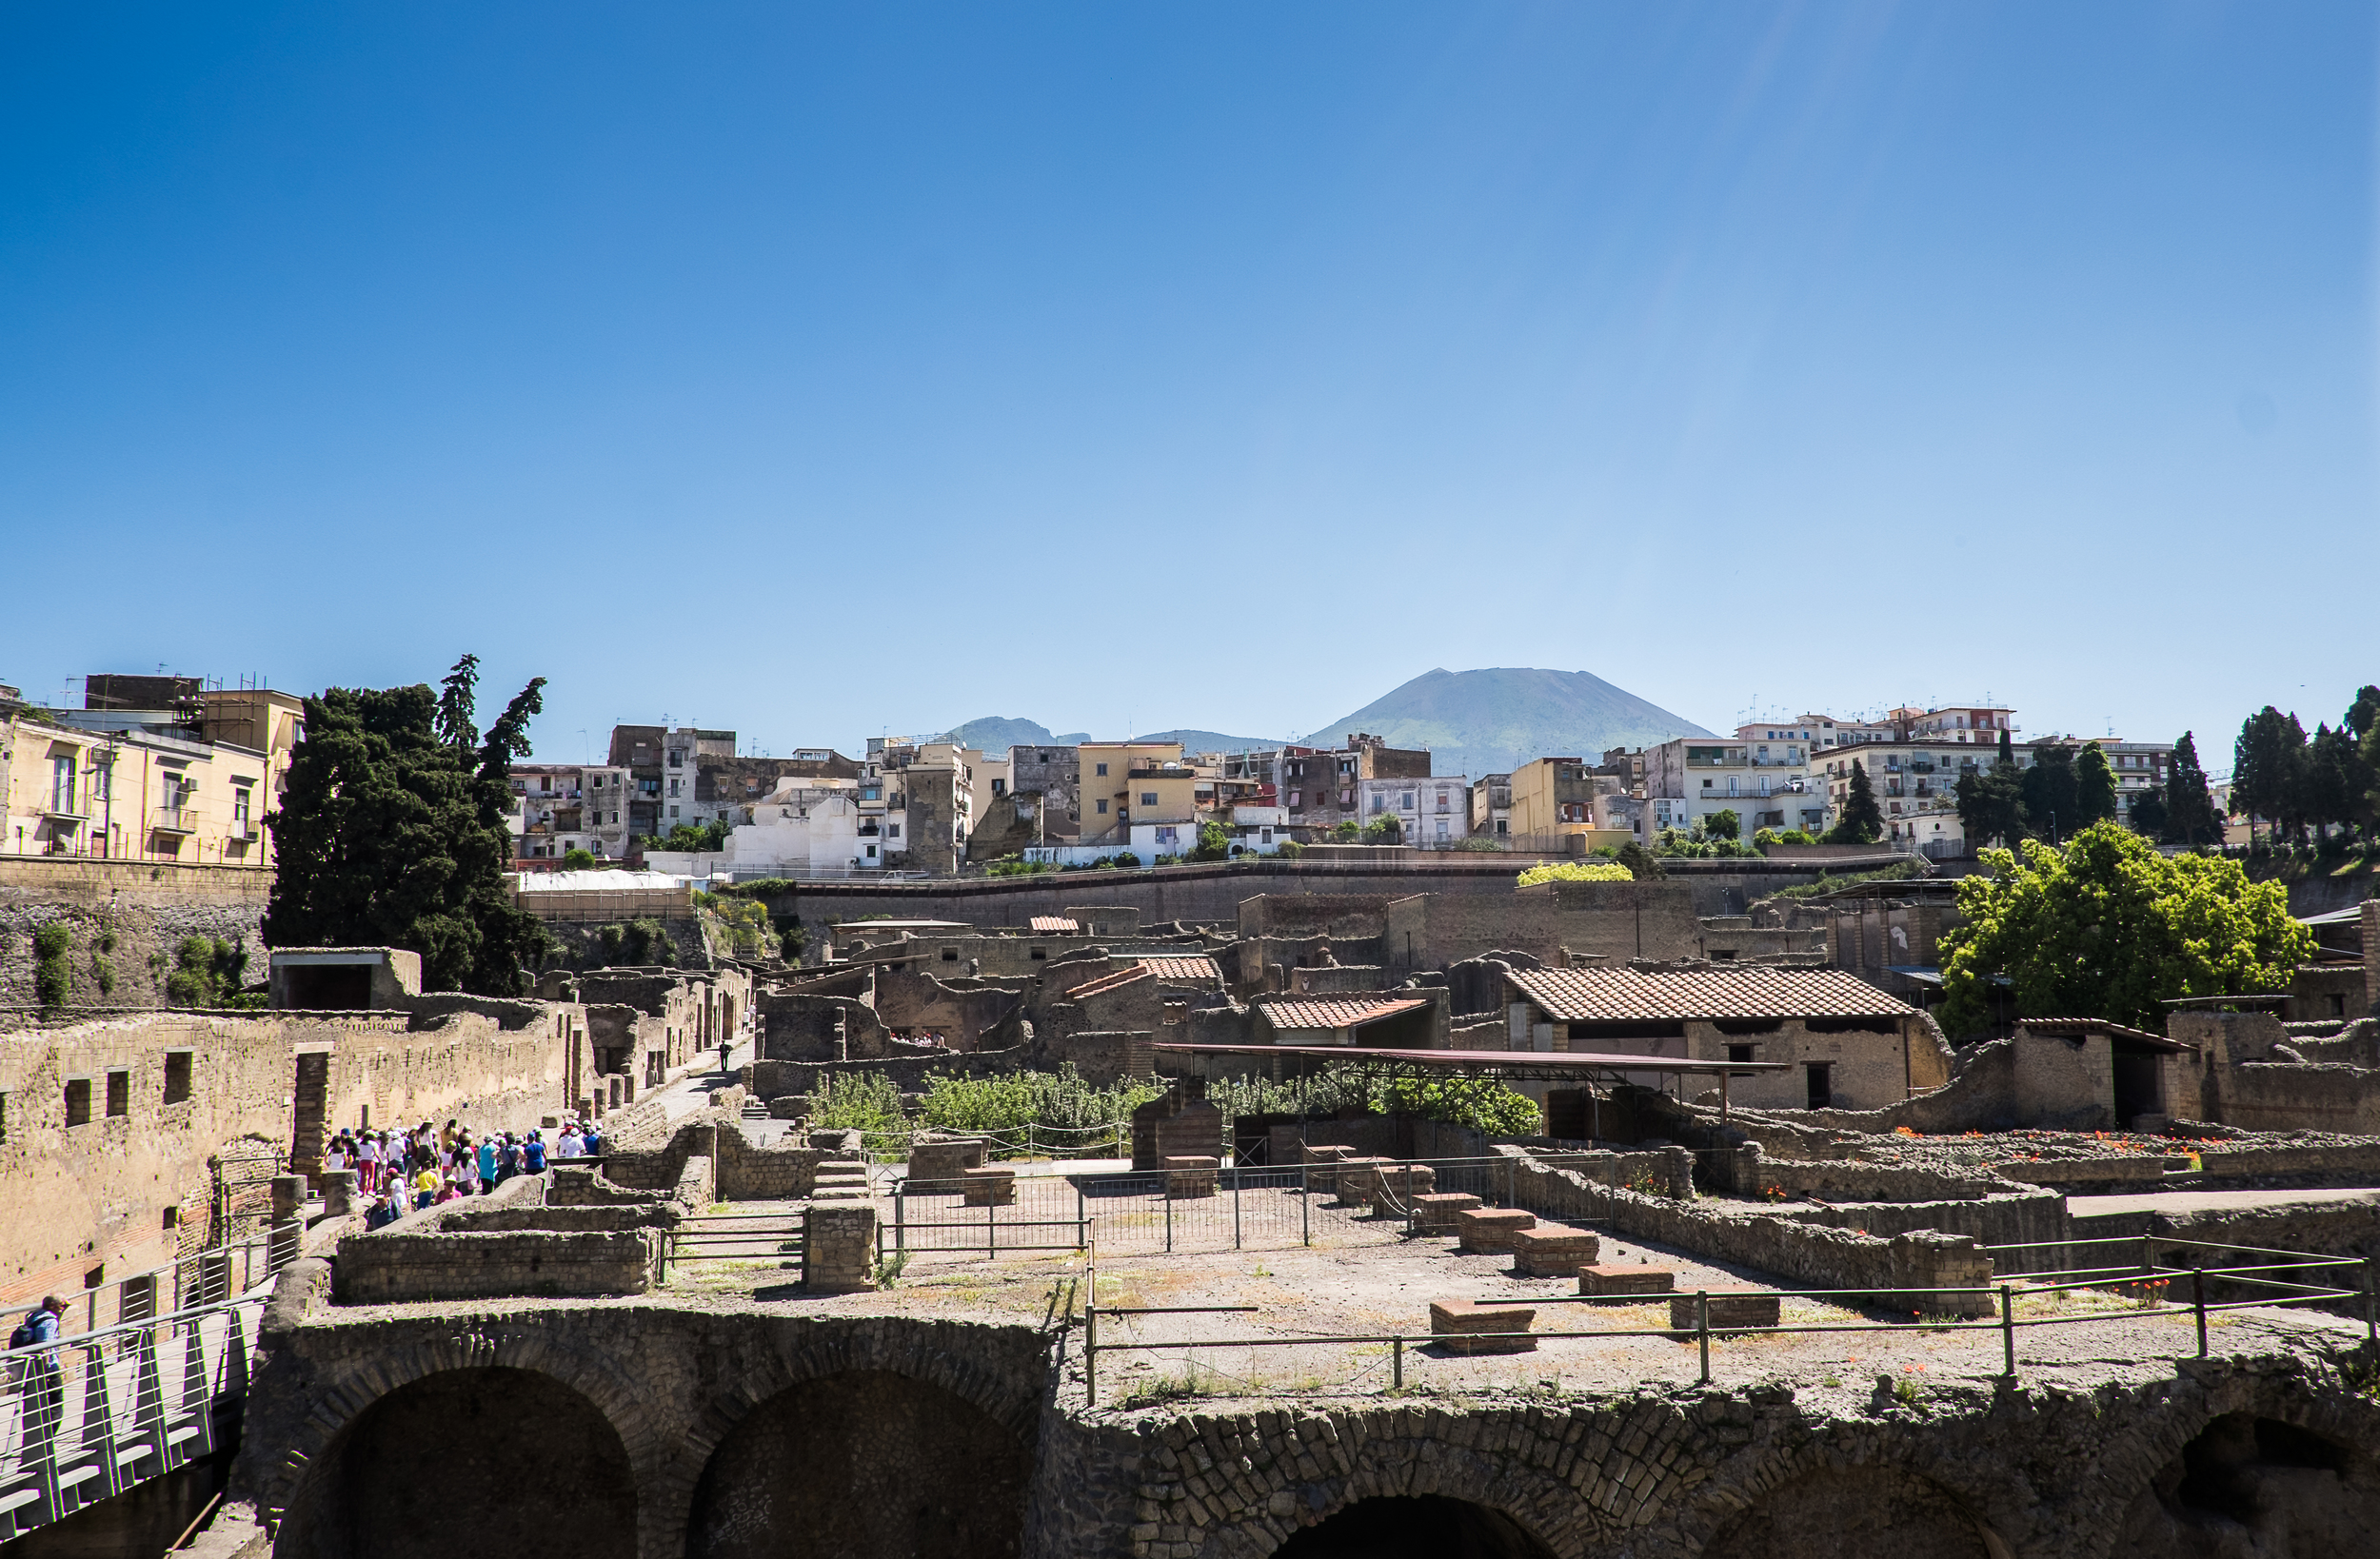 In 79 AD, this city was buried with volcanic mud from Mount Vesuvius -- seen in the background -- similarly to how Pompeii was buried in volcanic ash. The mud did a superior job of preserving this site; roughly 20% of the city has been excavated. The rest cannot, due to the modern-day city of Ecolani which sits on top of it, seen in the middle-ground.